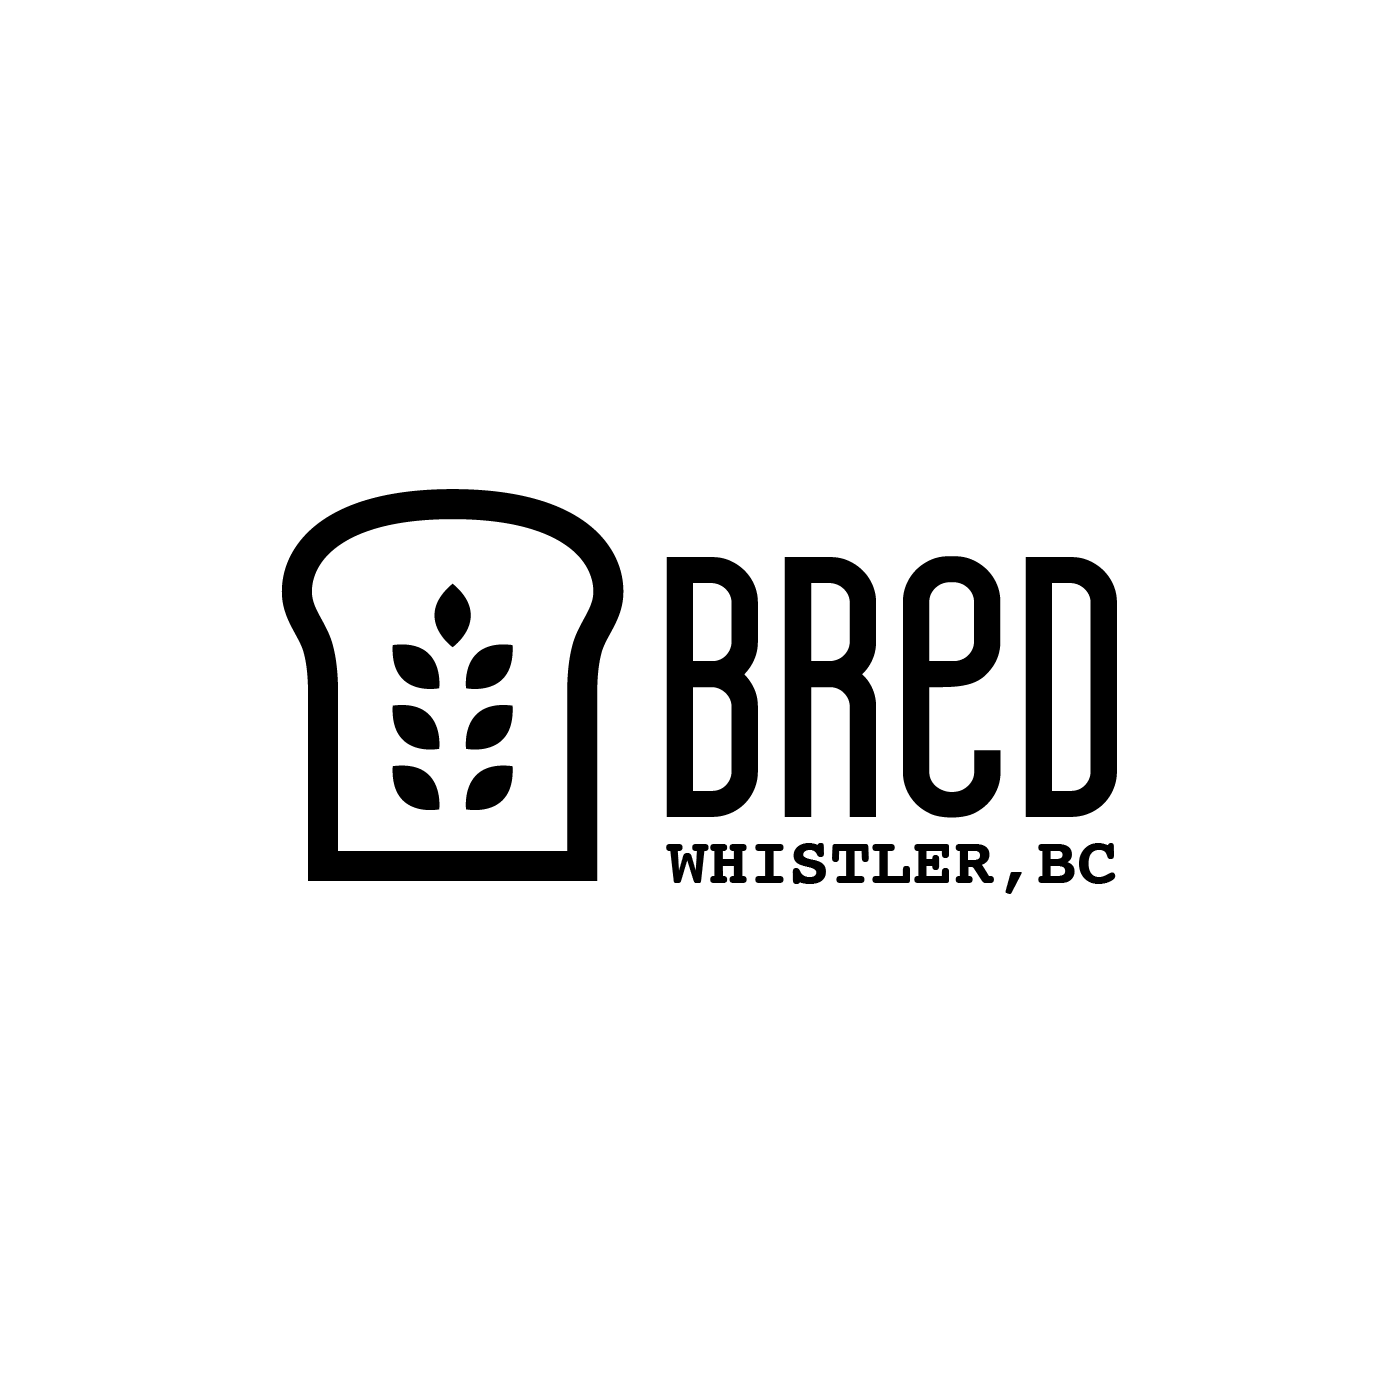 Black and white icon of a slice of bread with wheat leaves at its centre. The loco also reads Bred - Whistler, BC.